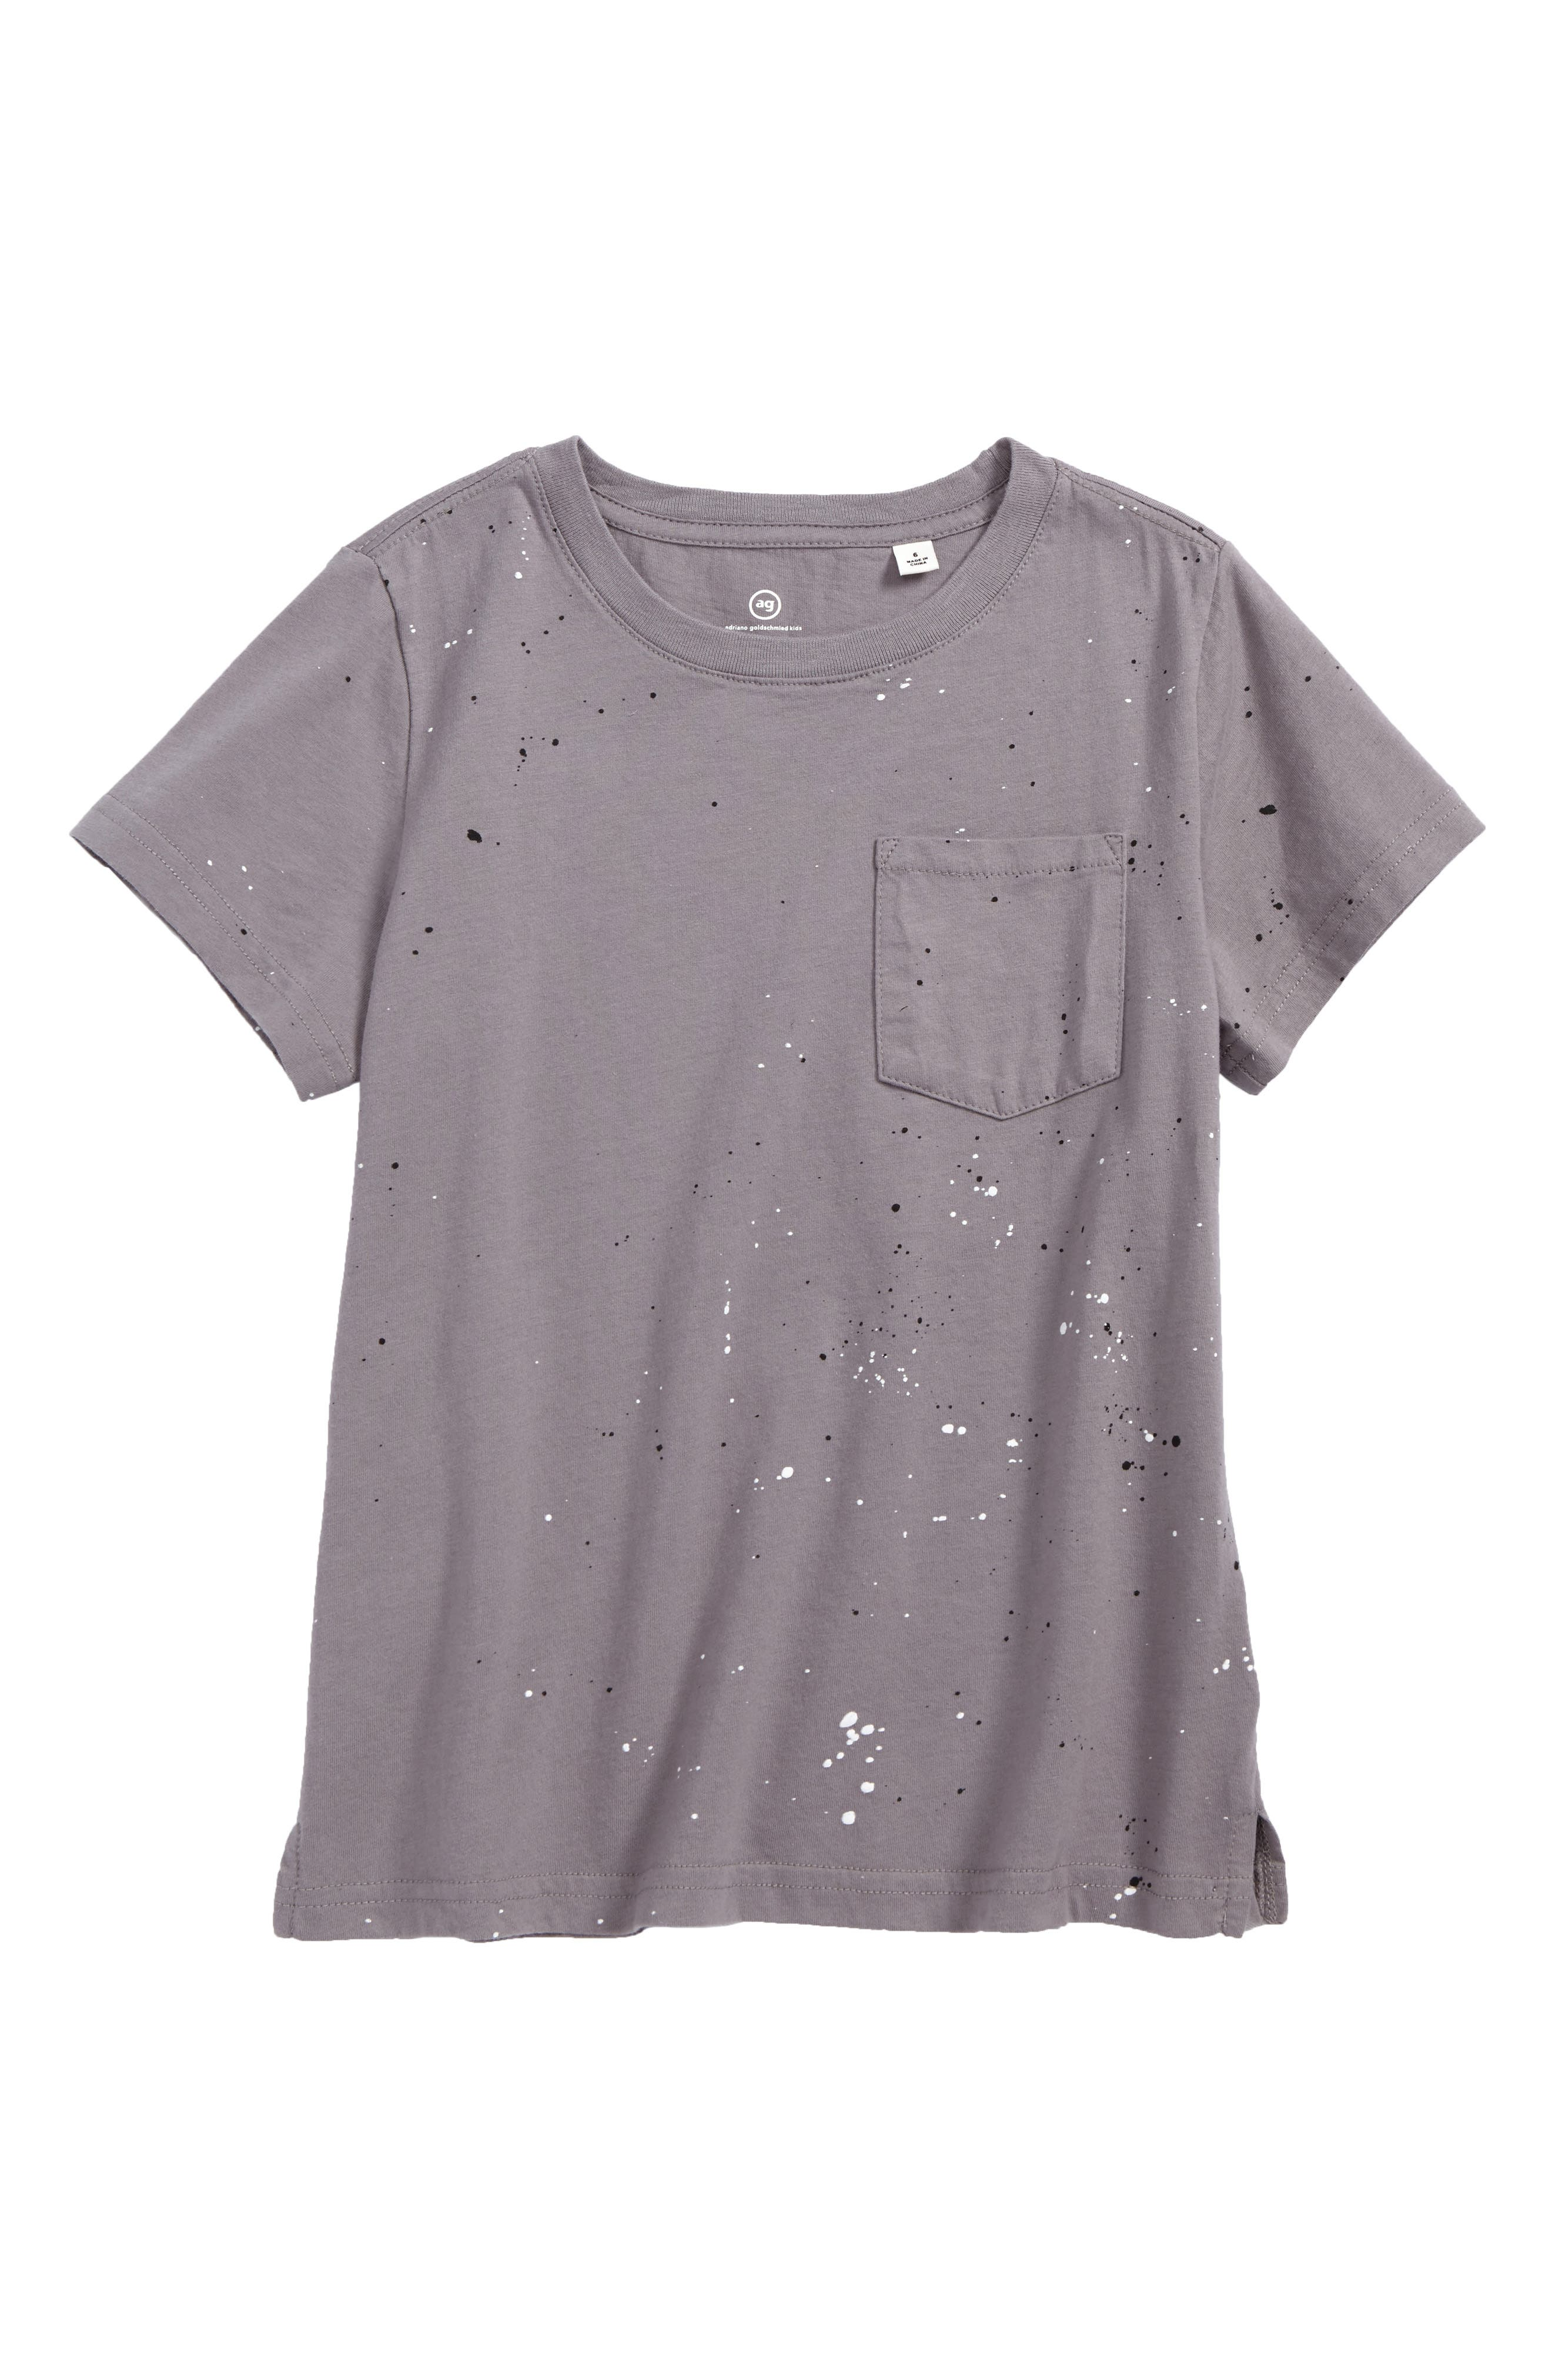 Main Image - AG Paint Splatter T-Shirt (Little Boys & Big Boys)